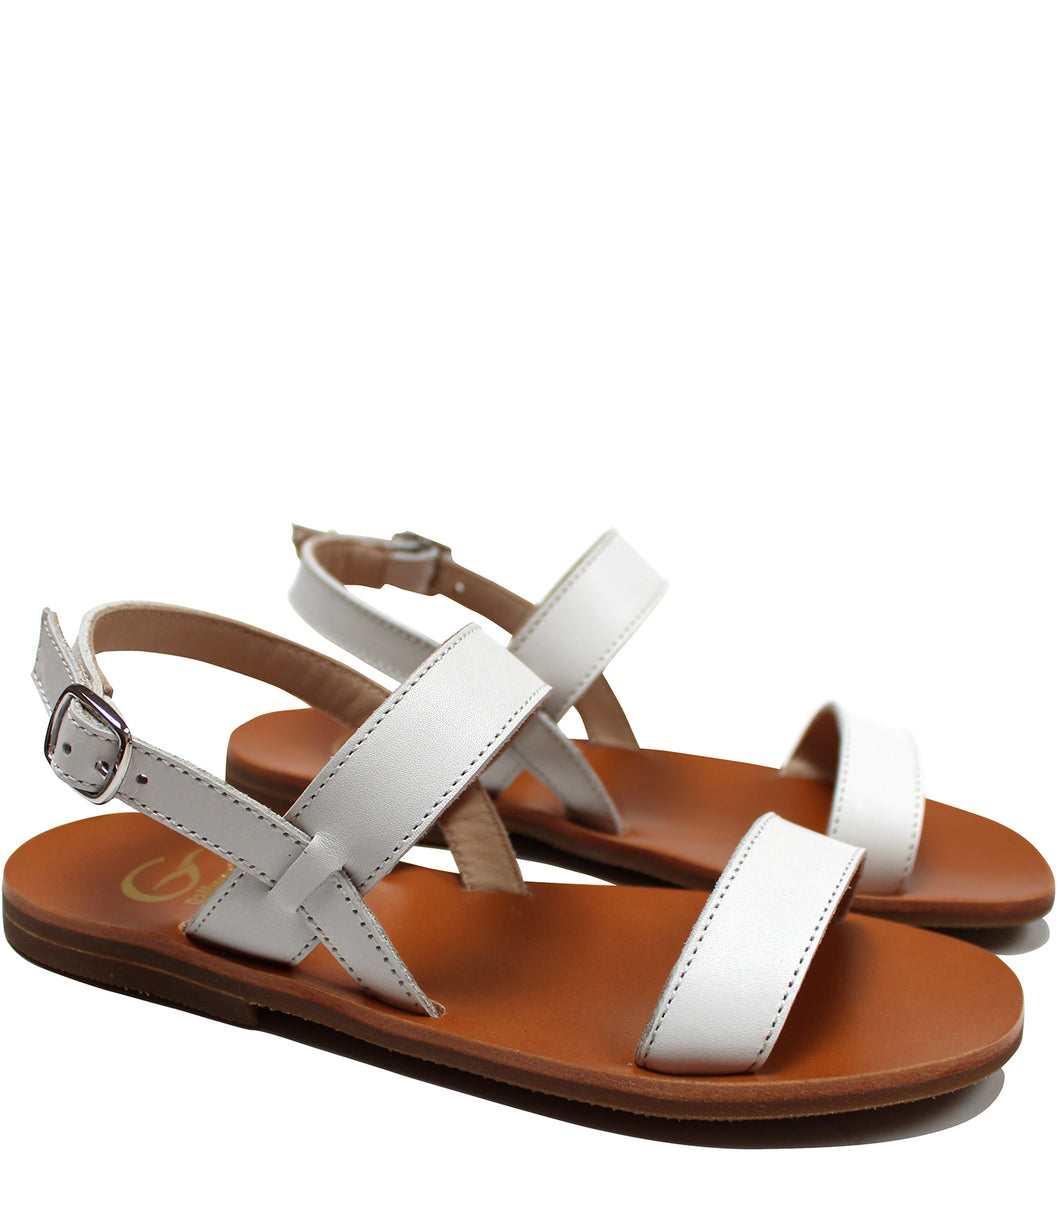 White sandals in calf leather